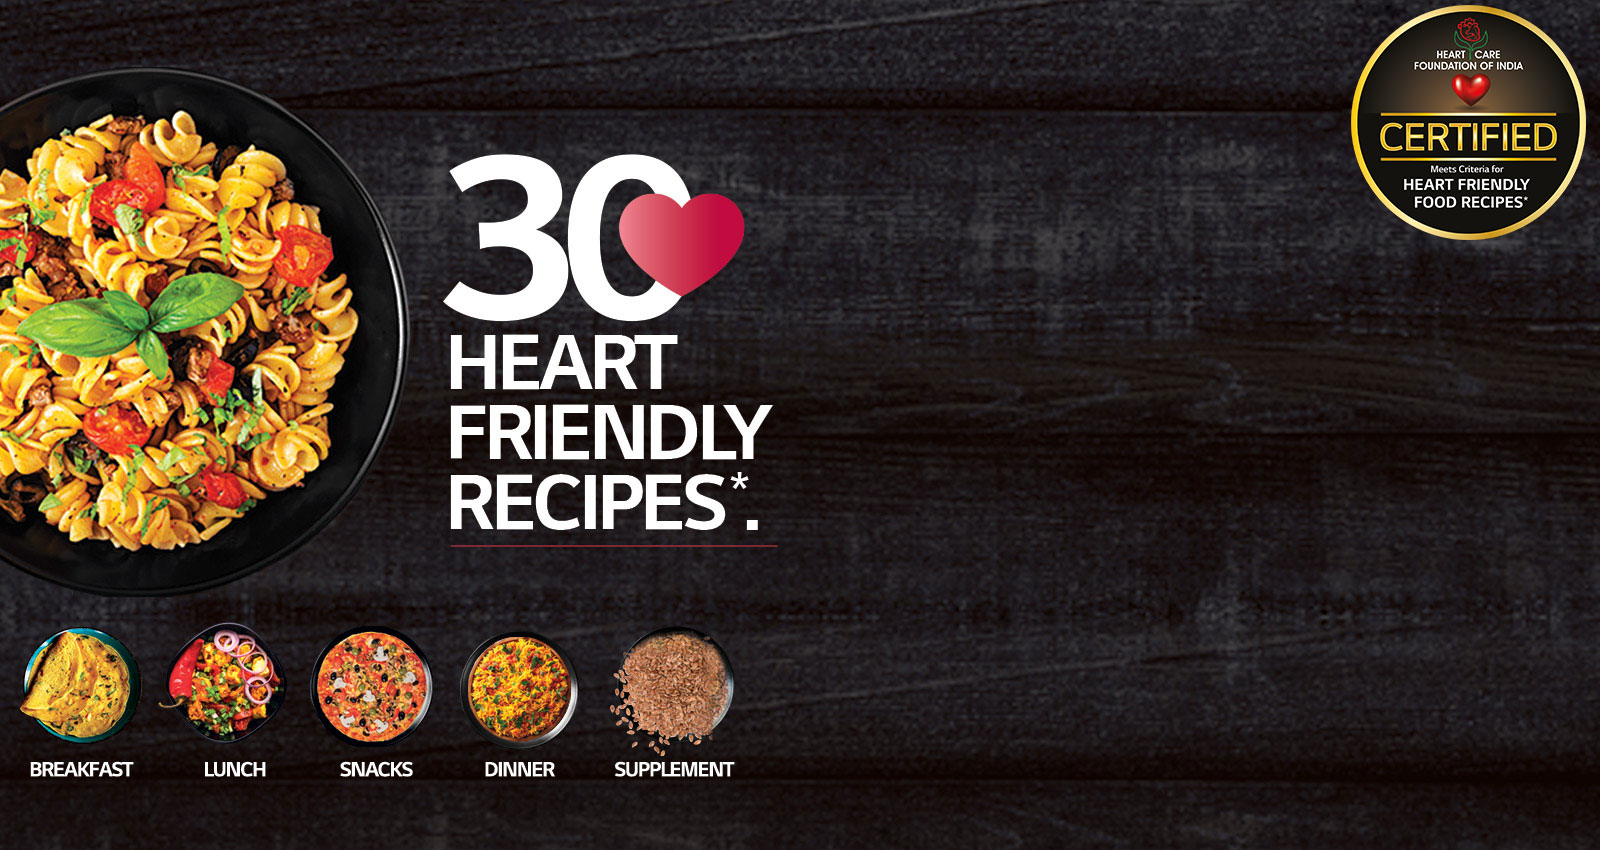 LG Healthy Heart™ Auto Cook Microwave Oven